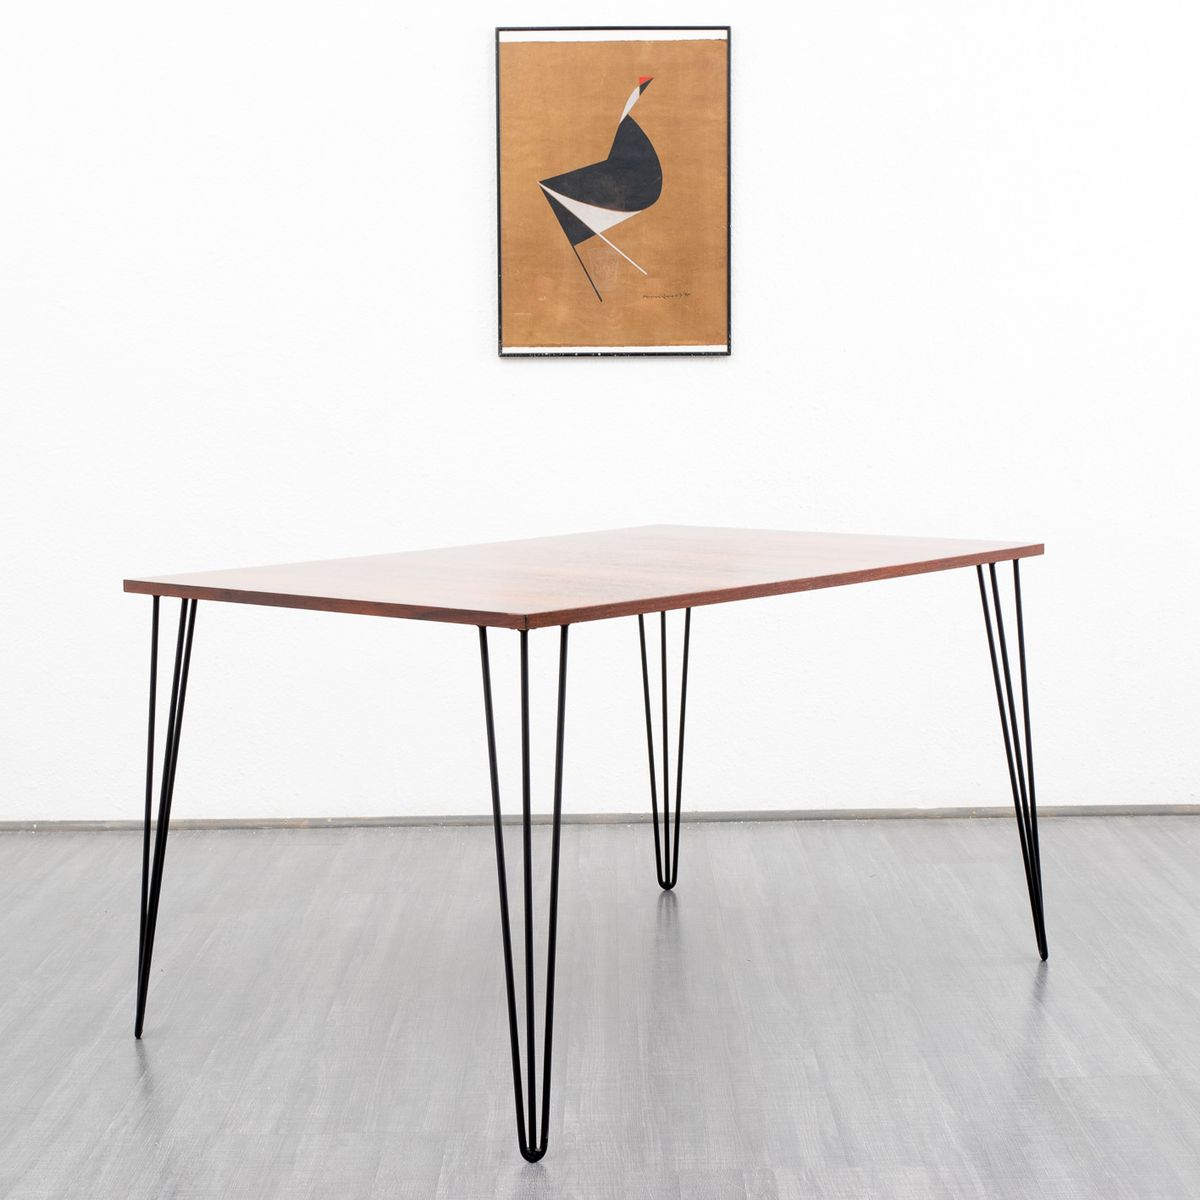 inside out table leg metal table leg diy by